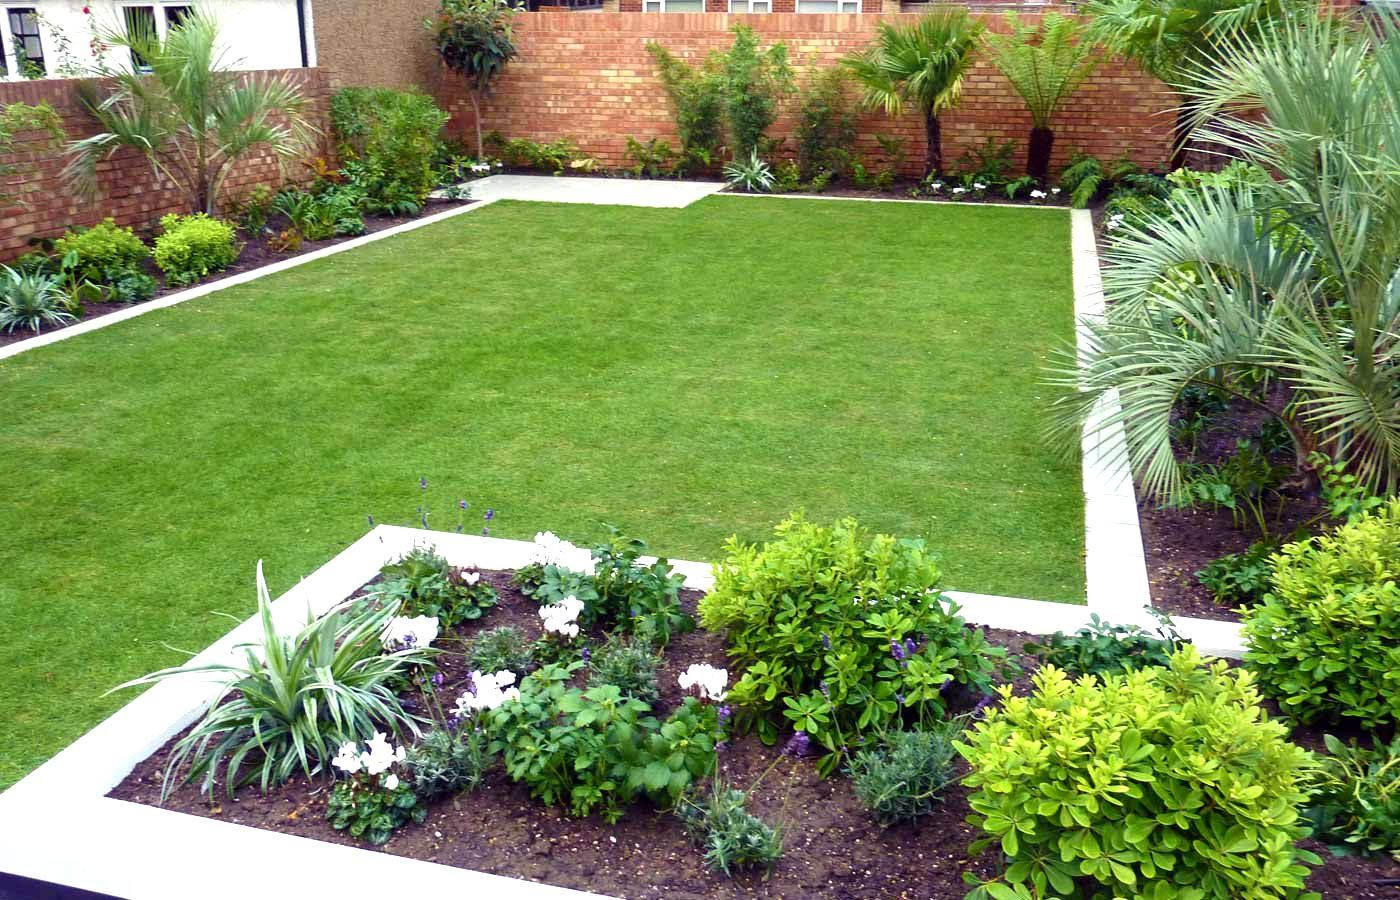 Simple garden designs no fret small garden design for Easy small garden design ideas